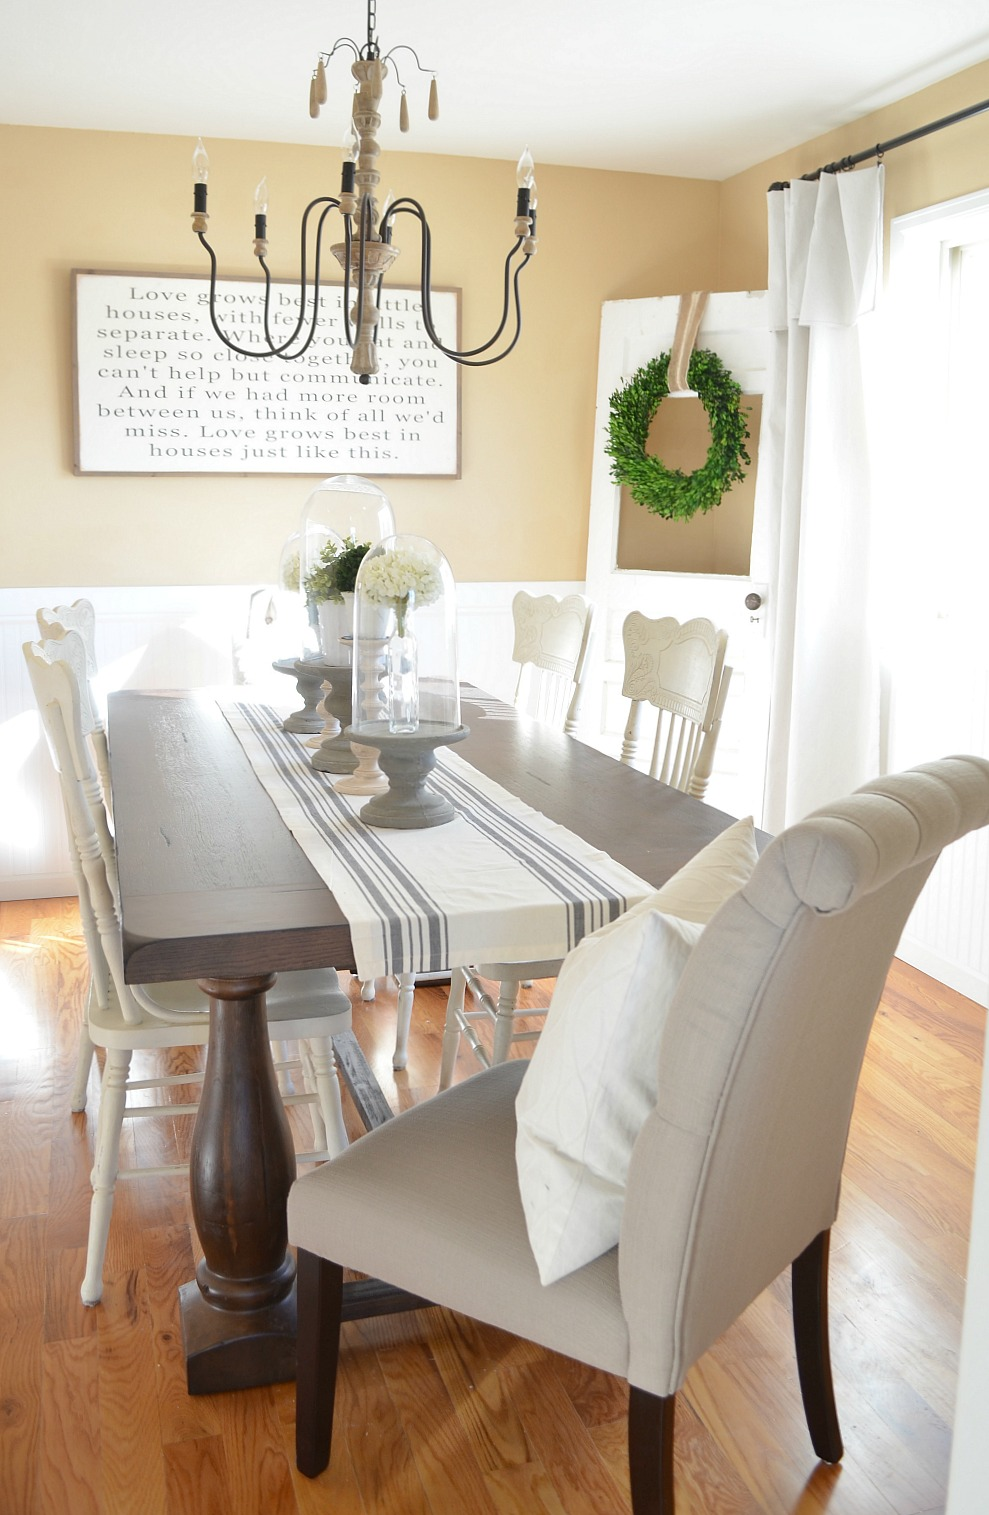 Modern farmhouse dining room makeover little vintage nest for Decorative items for dining room